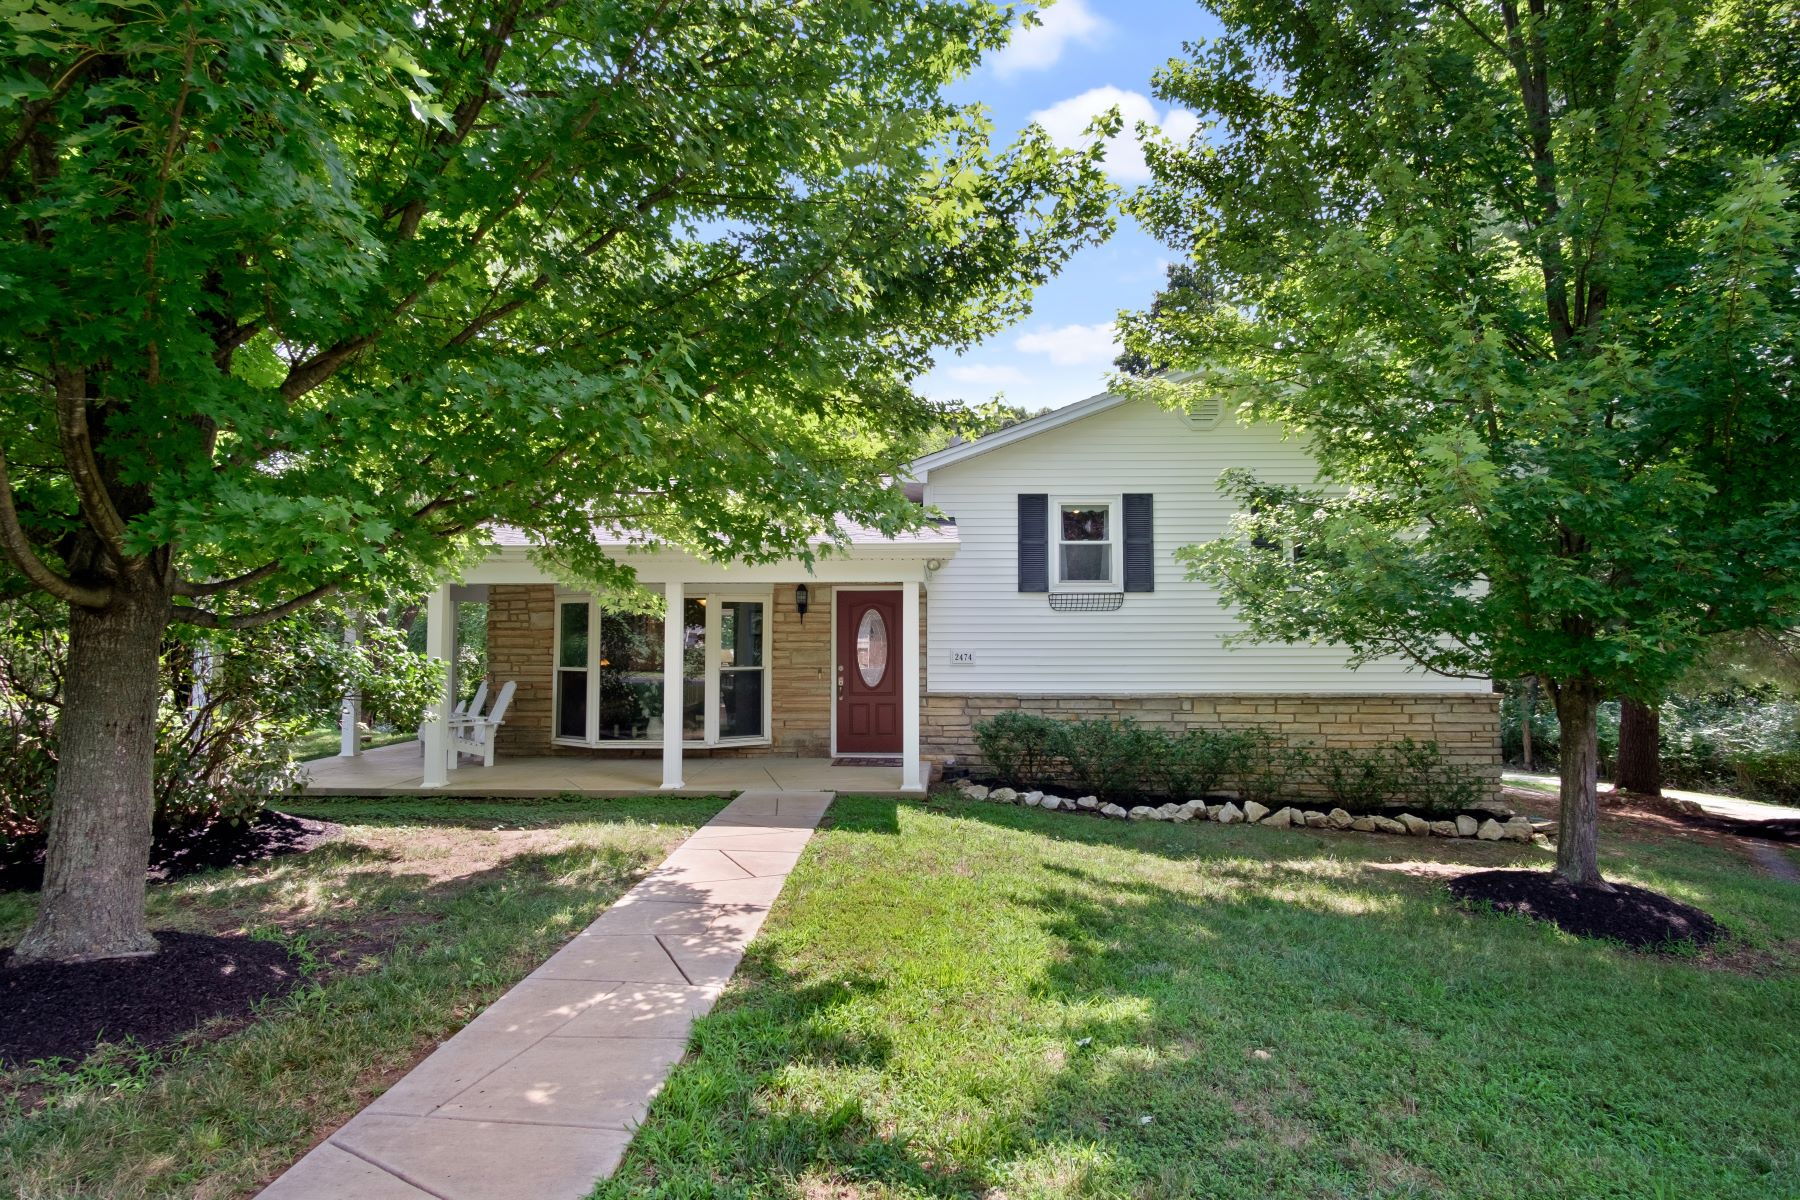 Single Family Homes for Sale at Lovely Renovated Home In High Ridge 2474 Crestview Drive High Ridge, Missouri 63049 United States